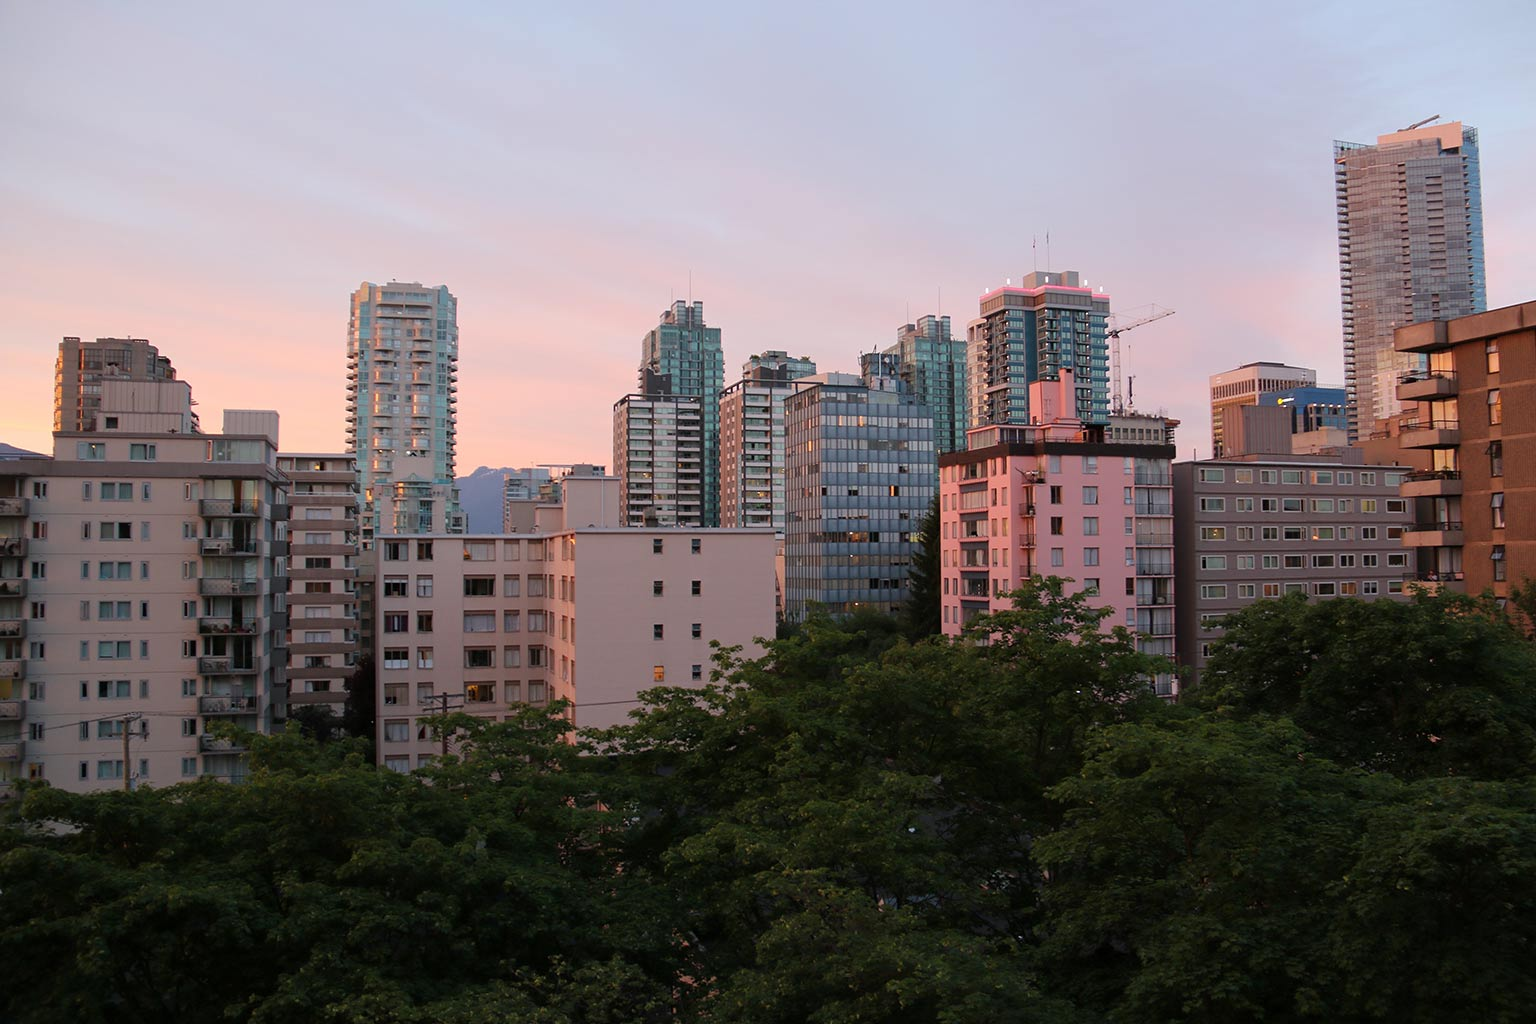 sunset over Vancouver buildings